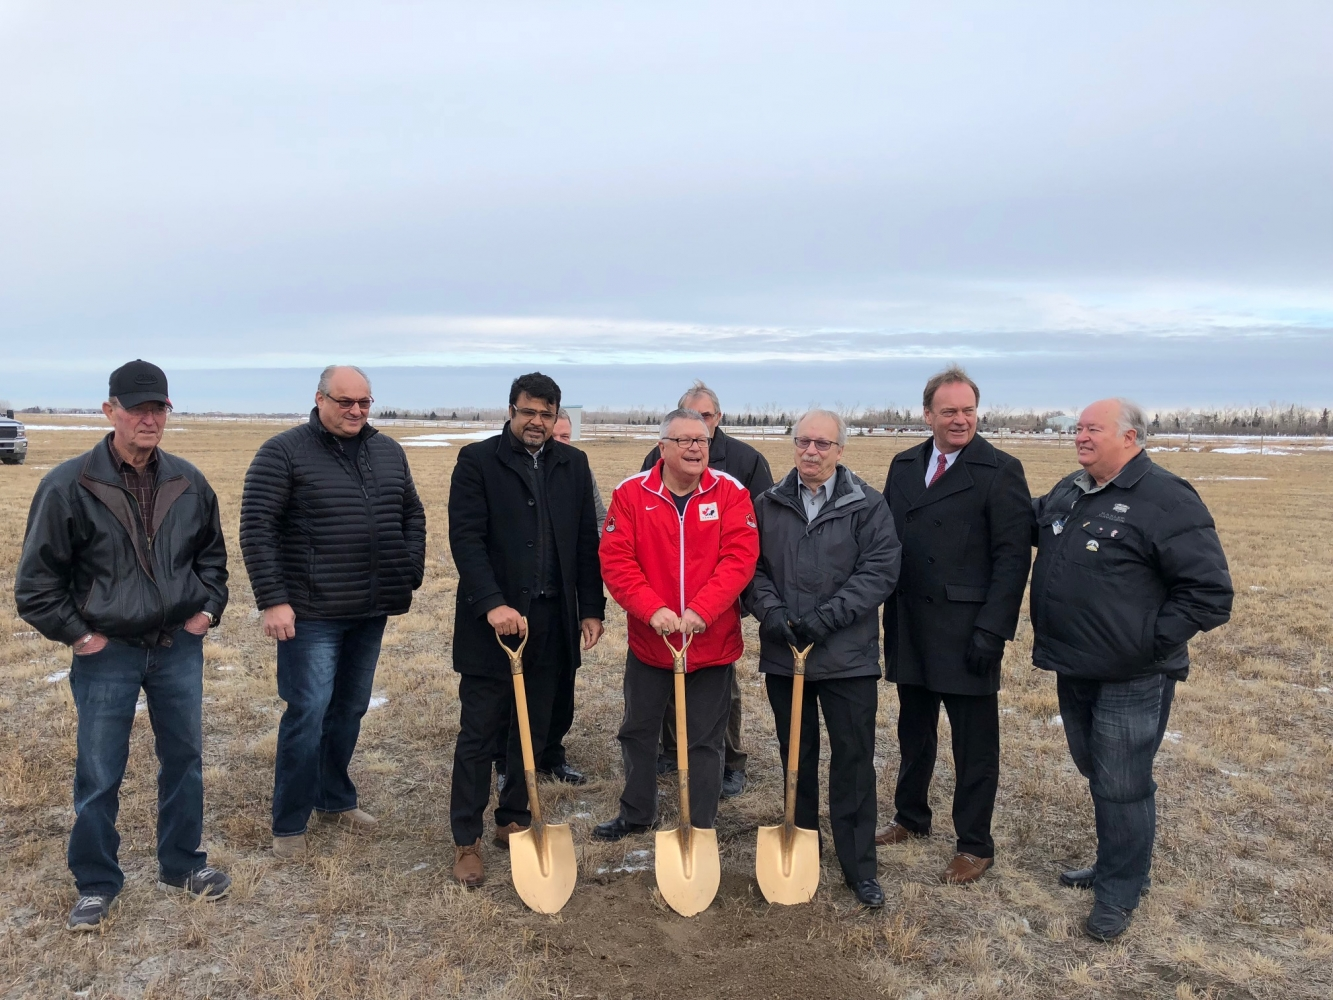 New White City-Emerald Park Wastewater Facility Construction Moving Forward